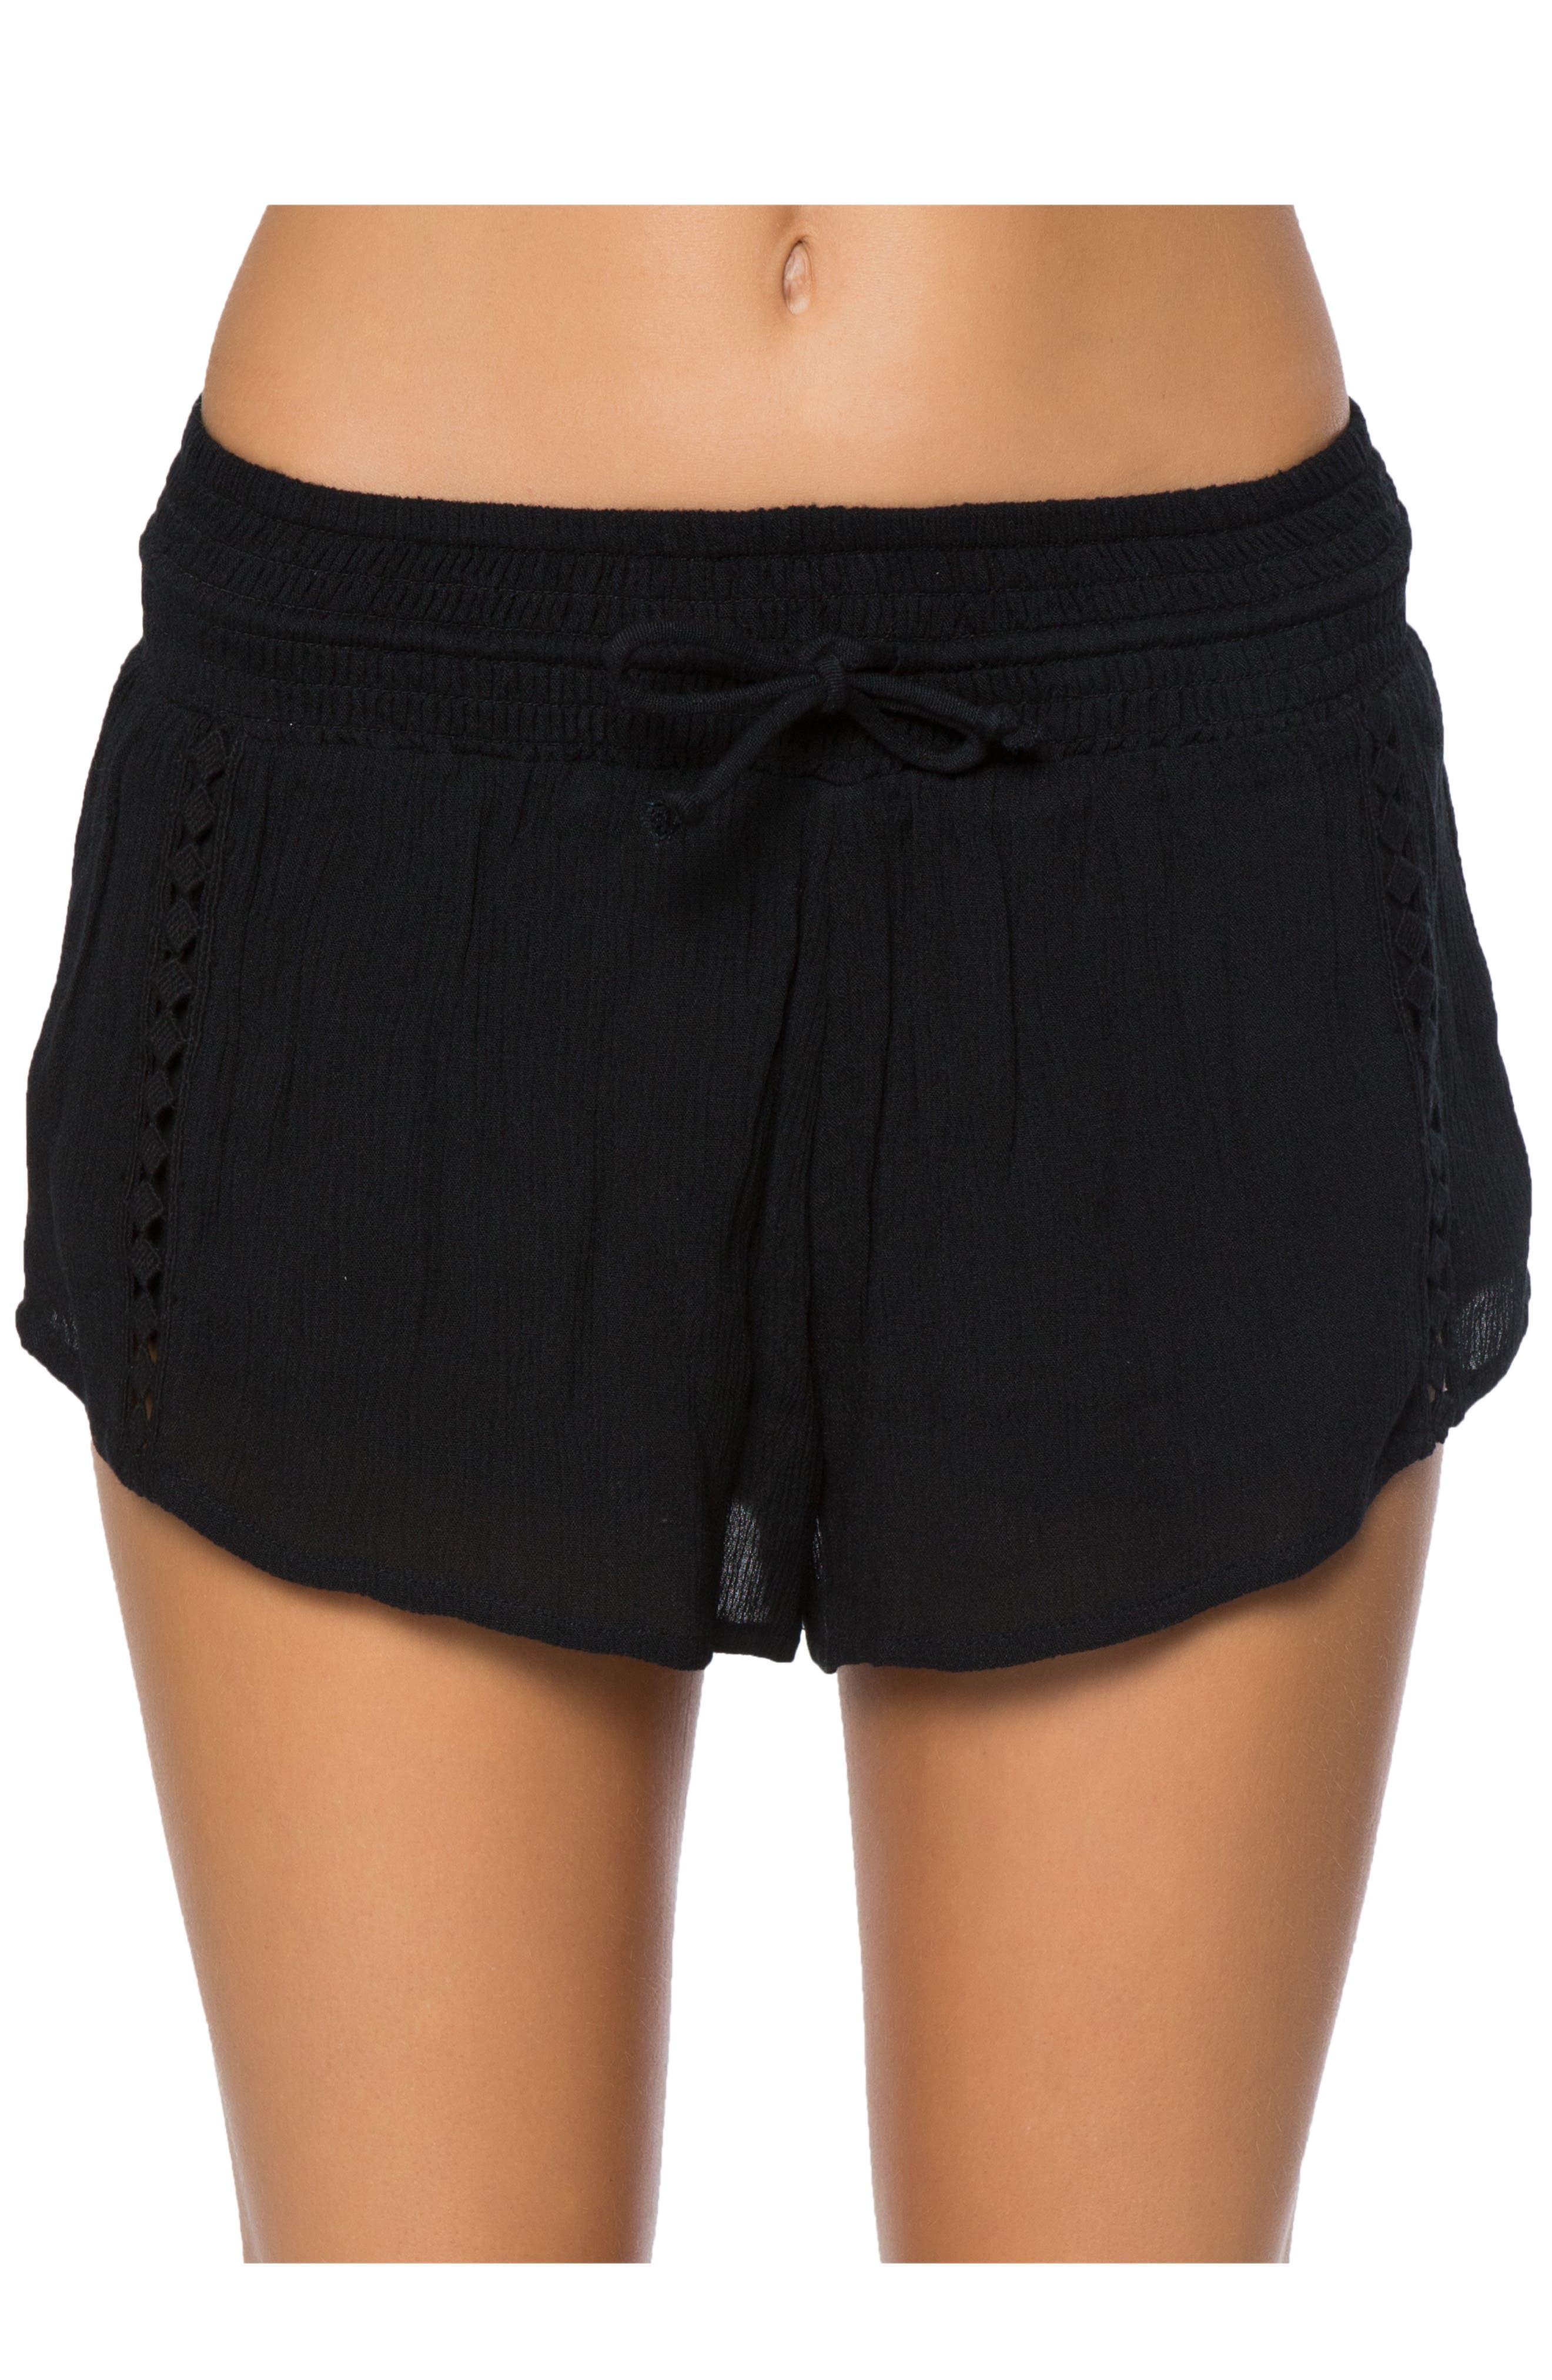 Elise Crochet Trim Shorts,                             Main thumbnail 1, color,                             001